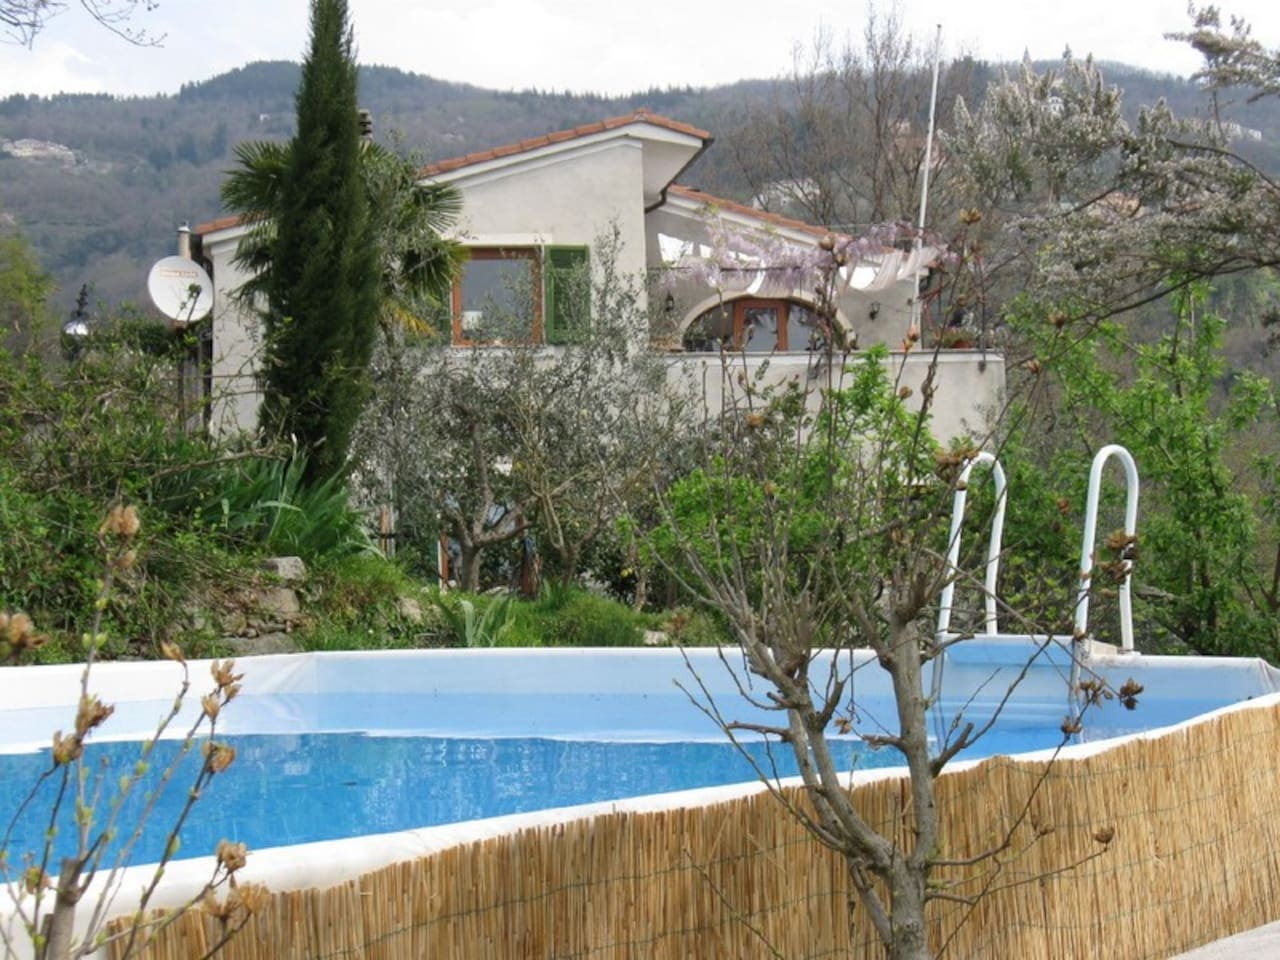 Cottage Wood 2+1 forest at the sea - Cabins for Rent in Calice Ligure